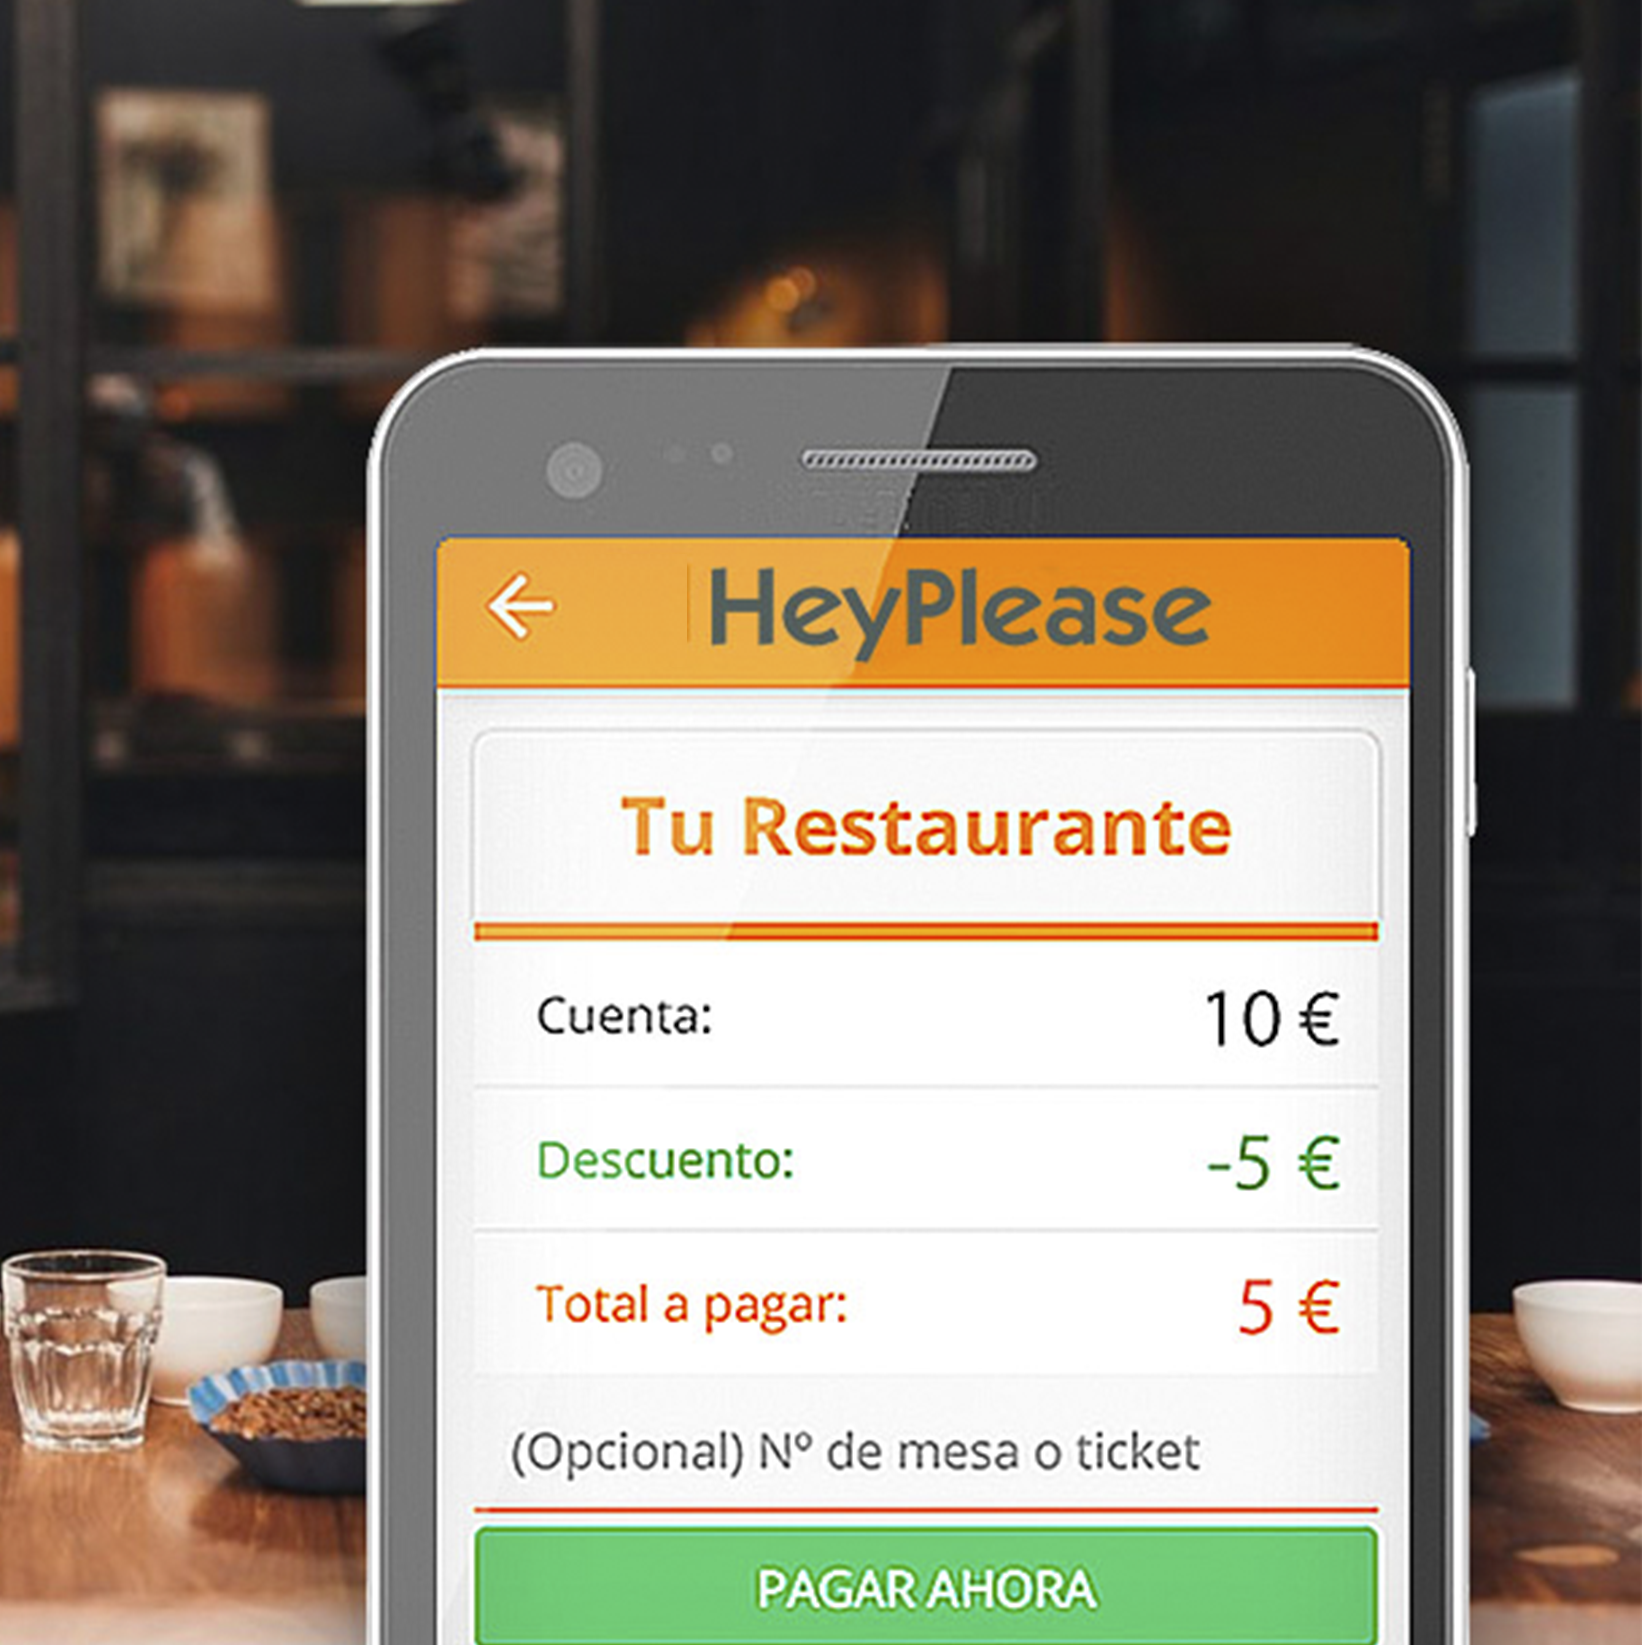 Up Spain compra Heyplease.